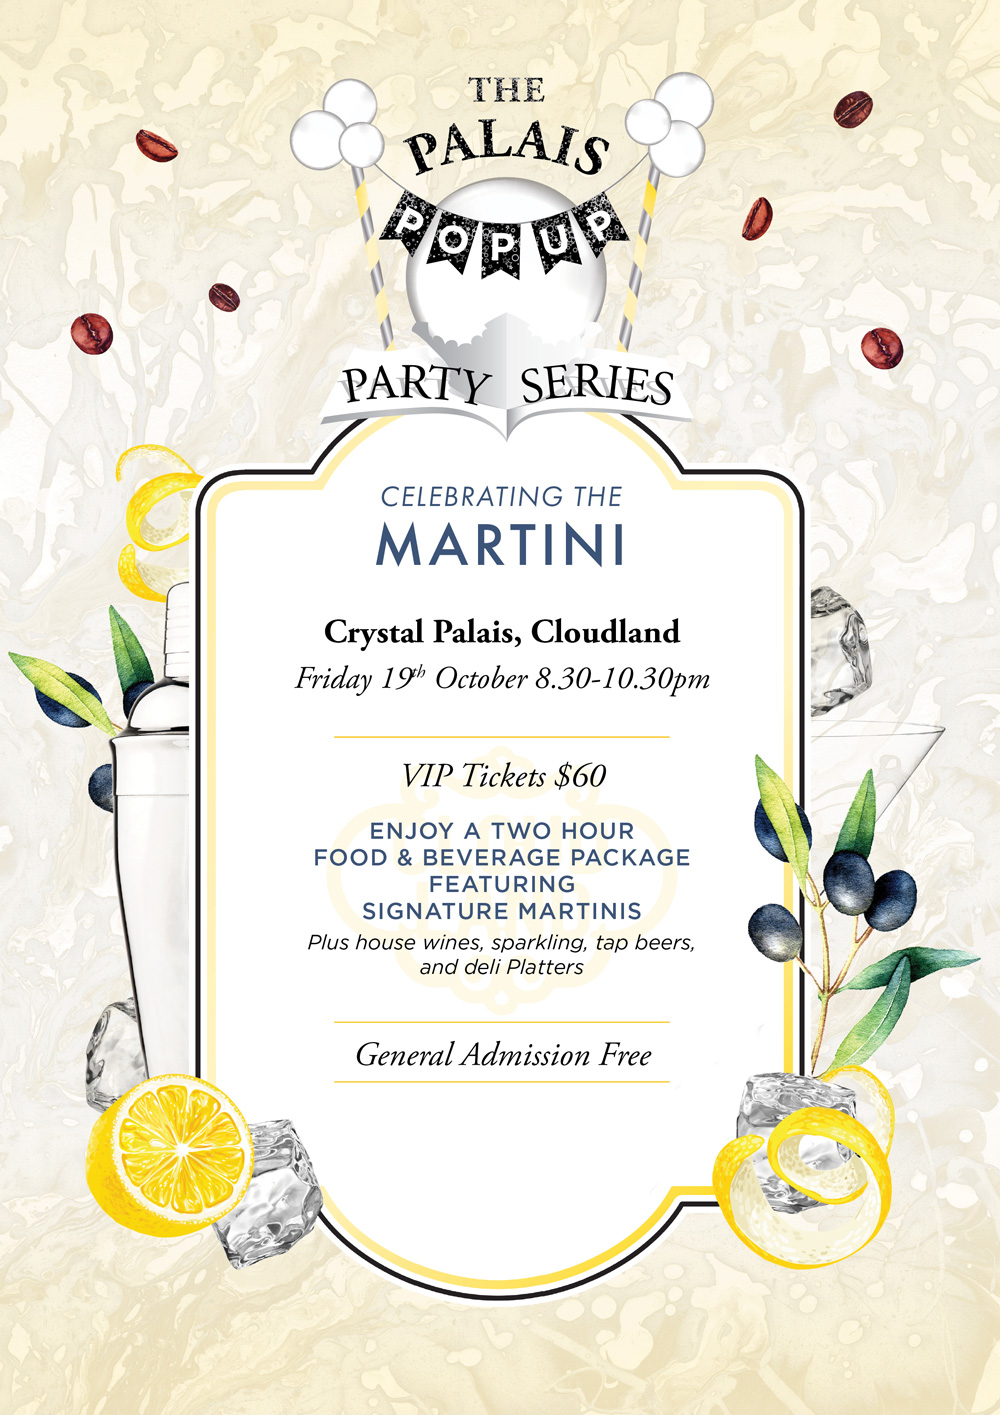 Cloudland Palais Pop-Up Party Martini